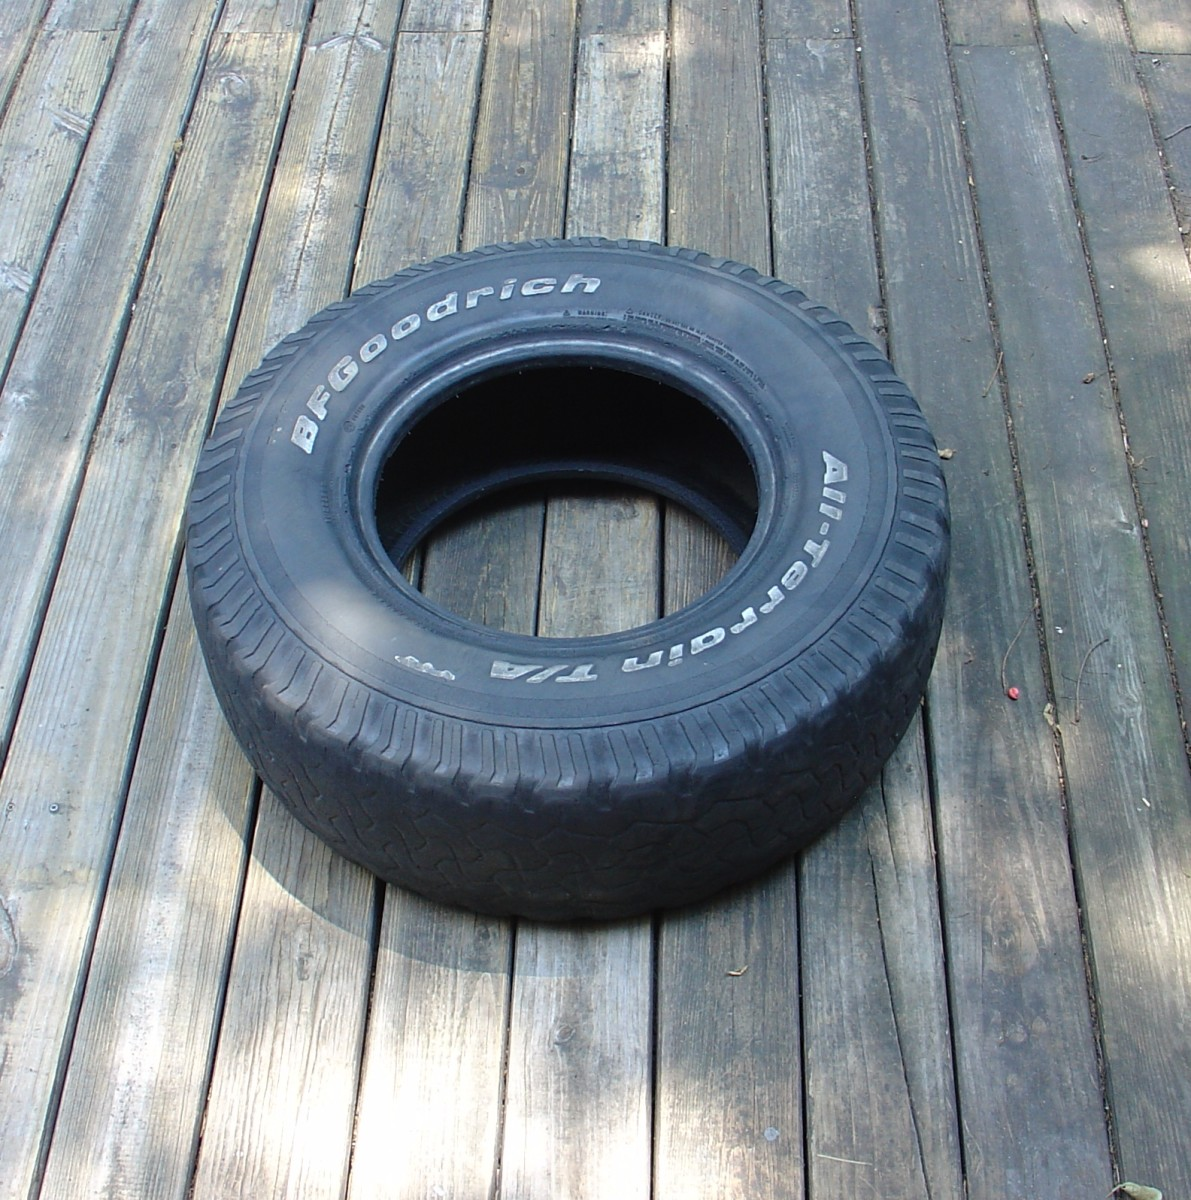 Just any old tire - I picked this one because it was wider than most.